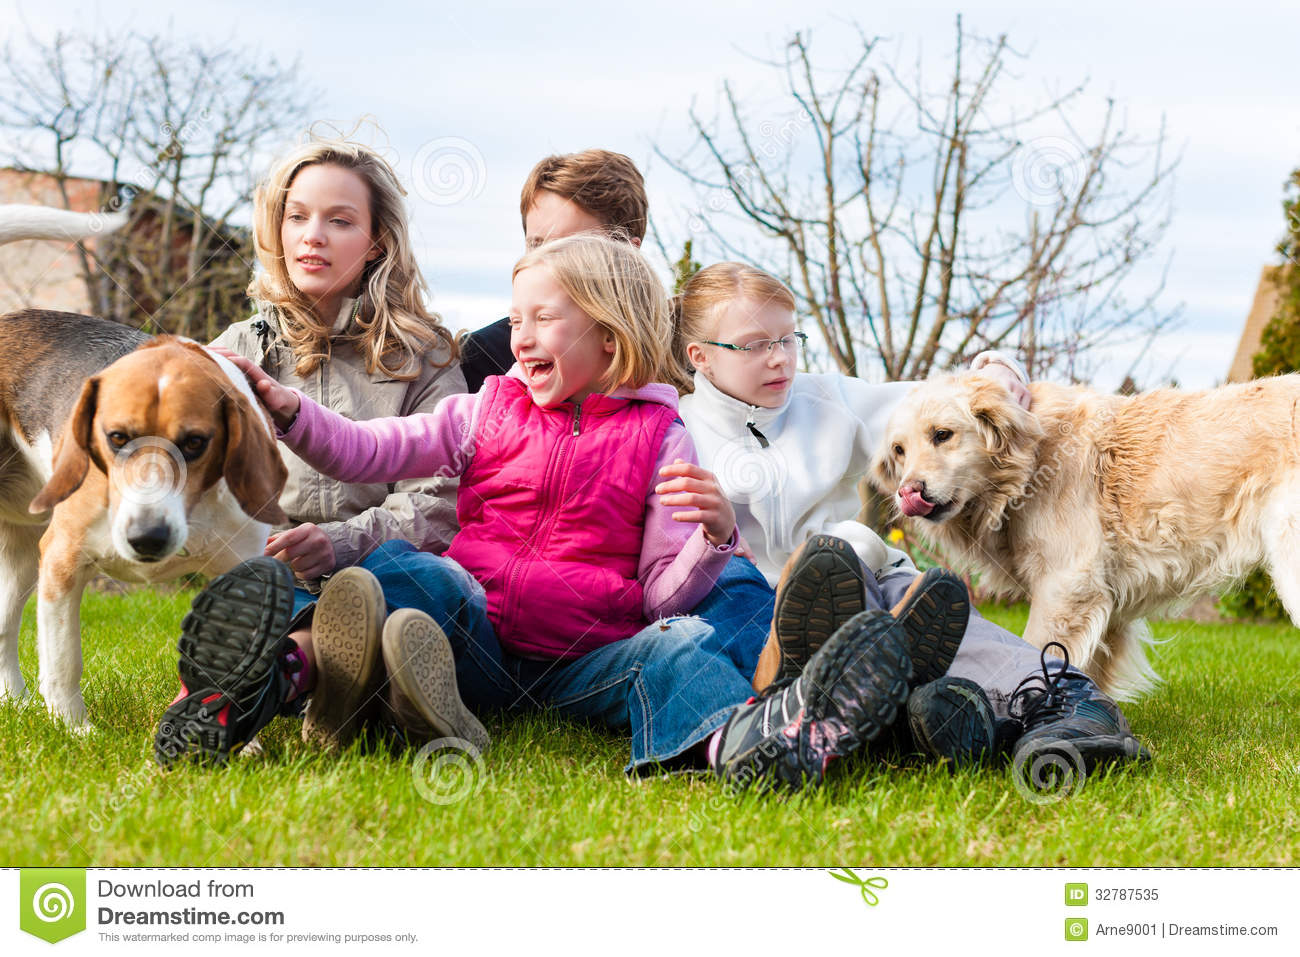 Mom And Daughter Walking The Dog Royalty Free Stock Photo ... |Dog Mom And Daughter